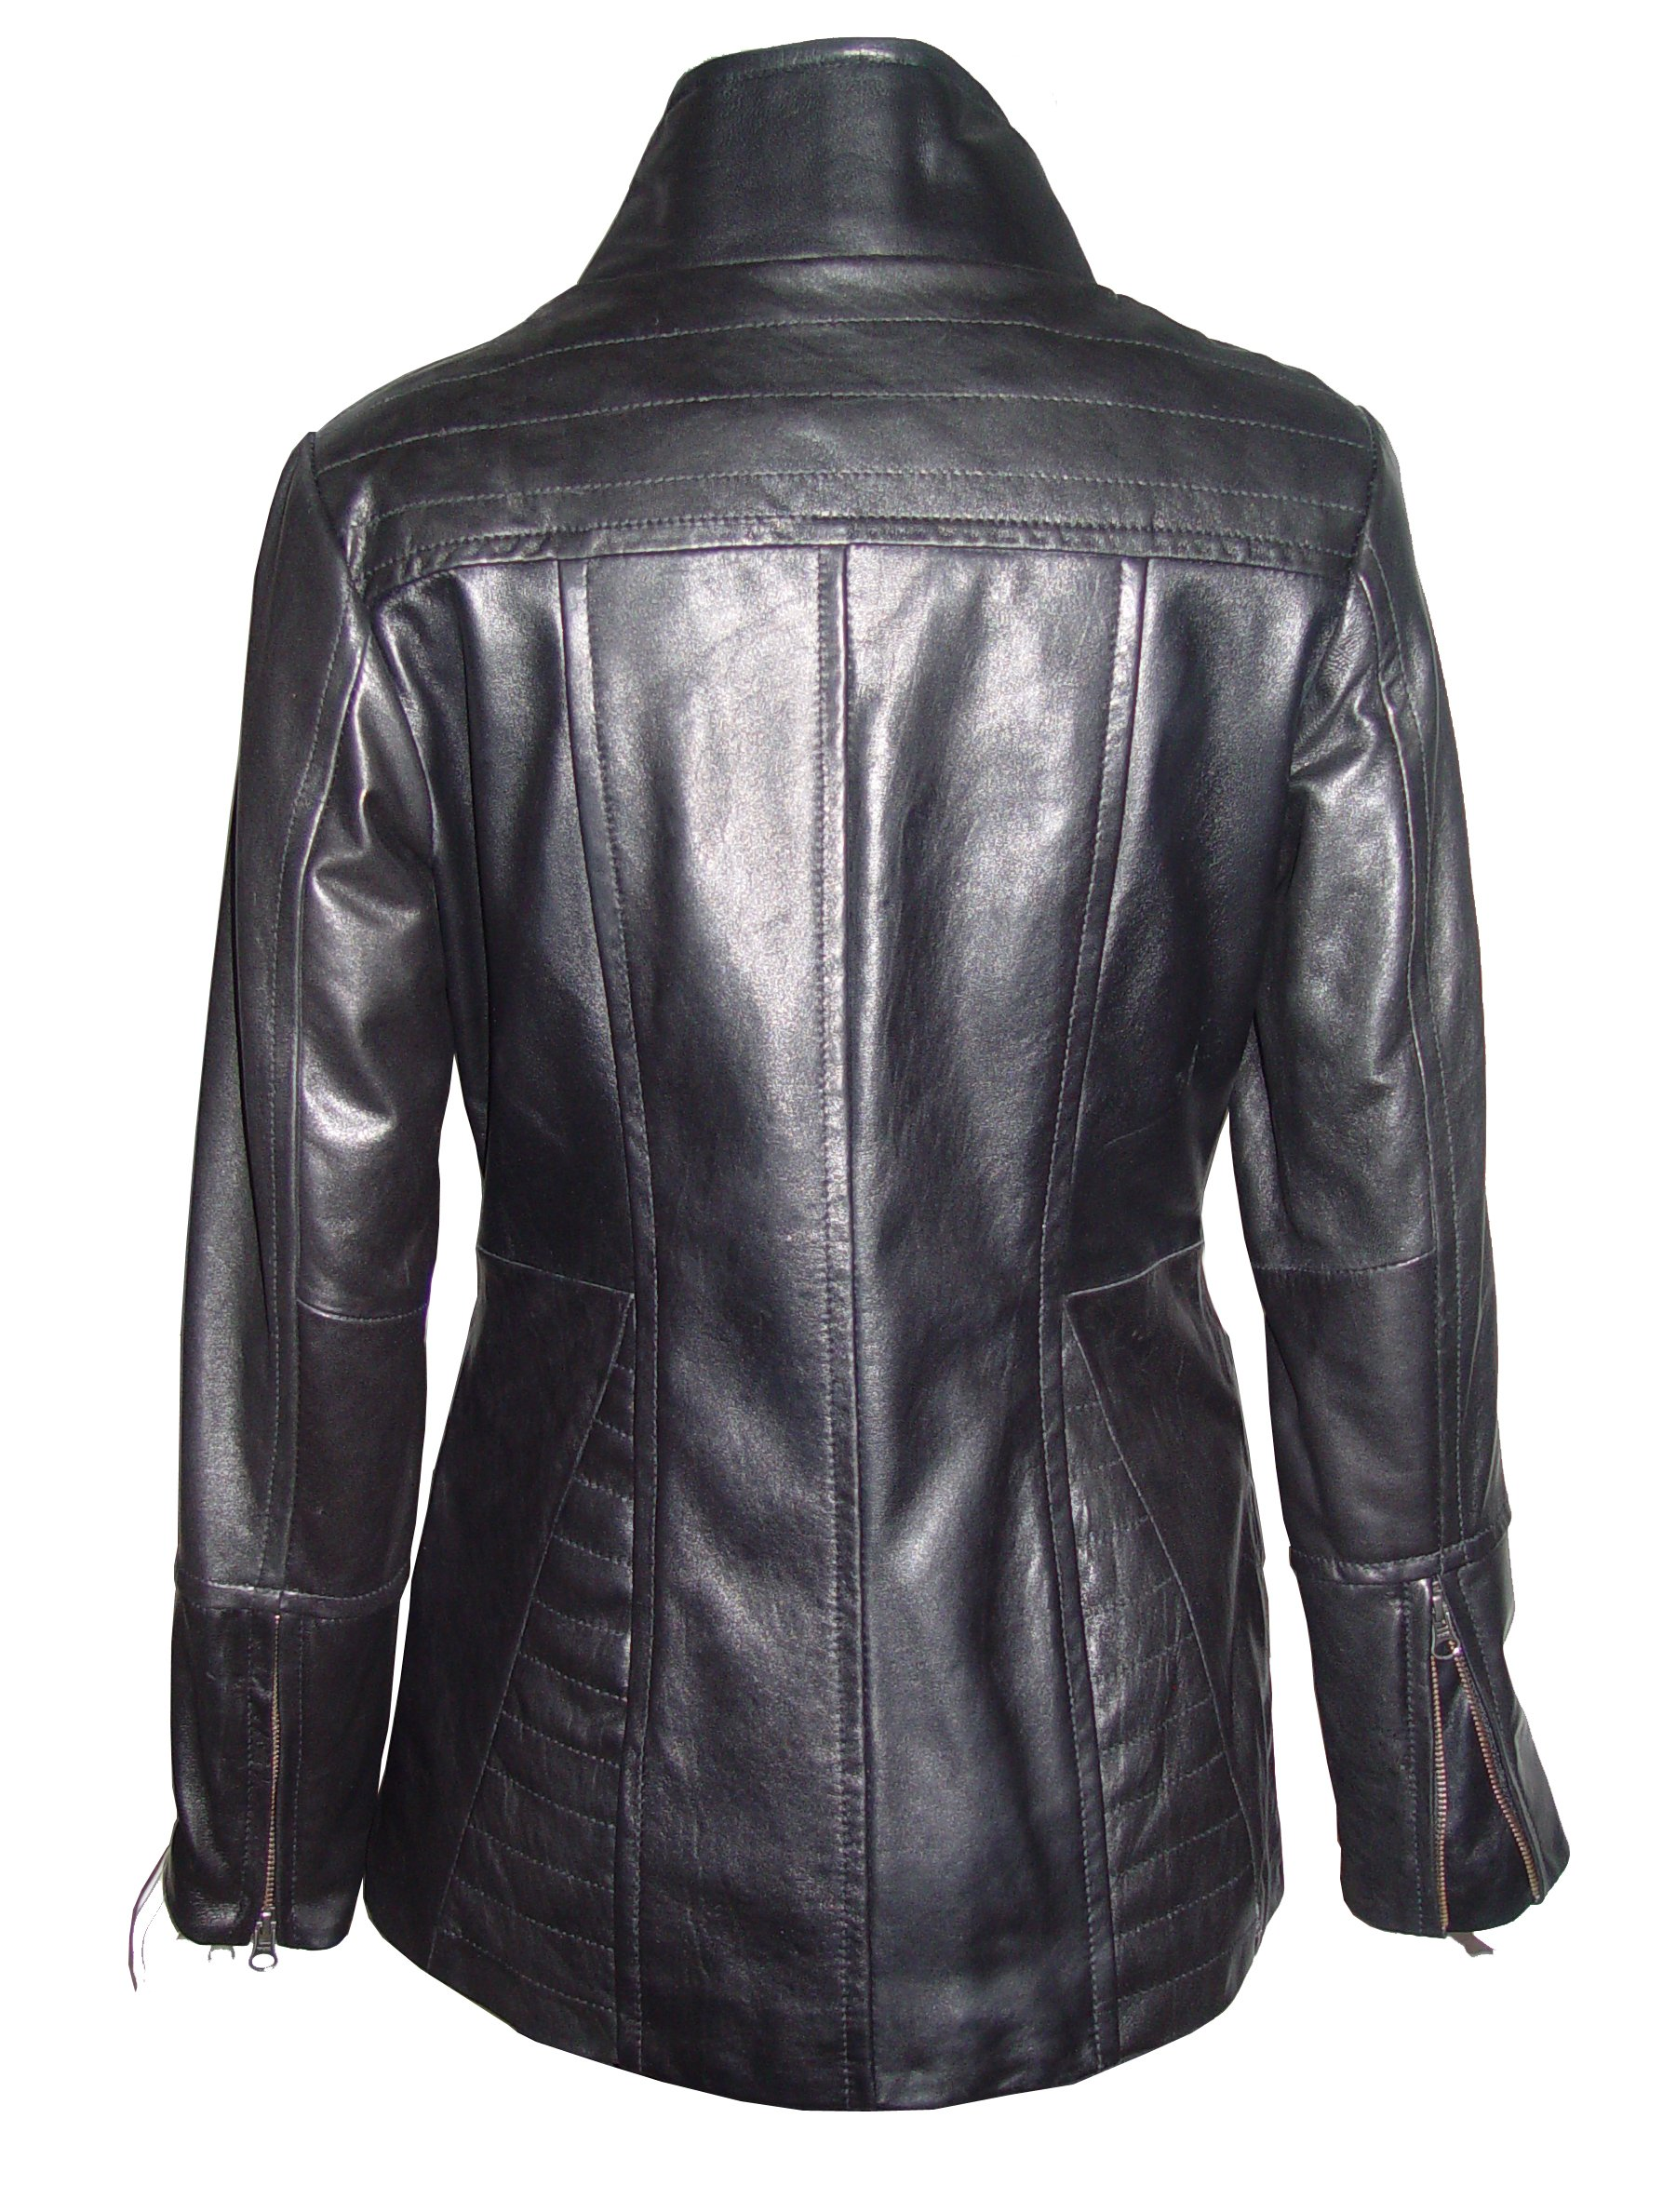 Nettailor 4188 Leather Jackets Clothes Ladies Soft Lamb by Paccilo (Image #3)